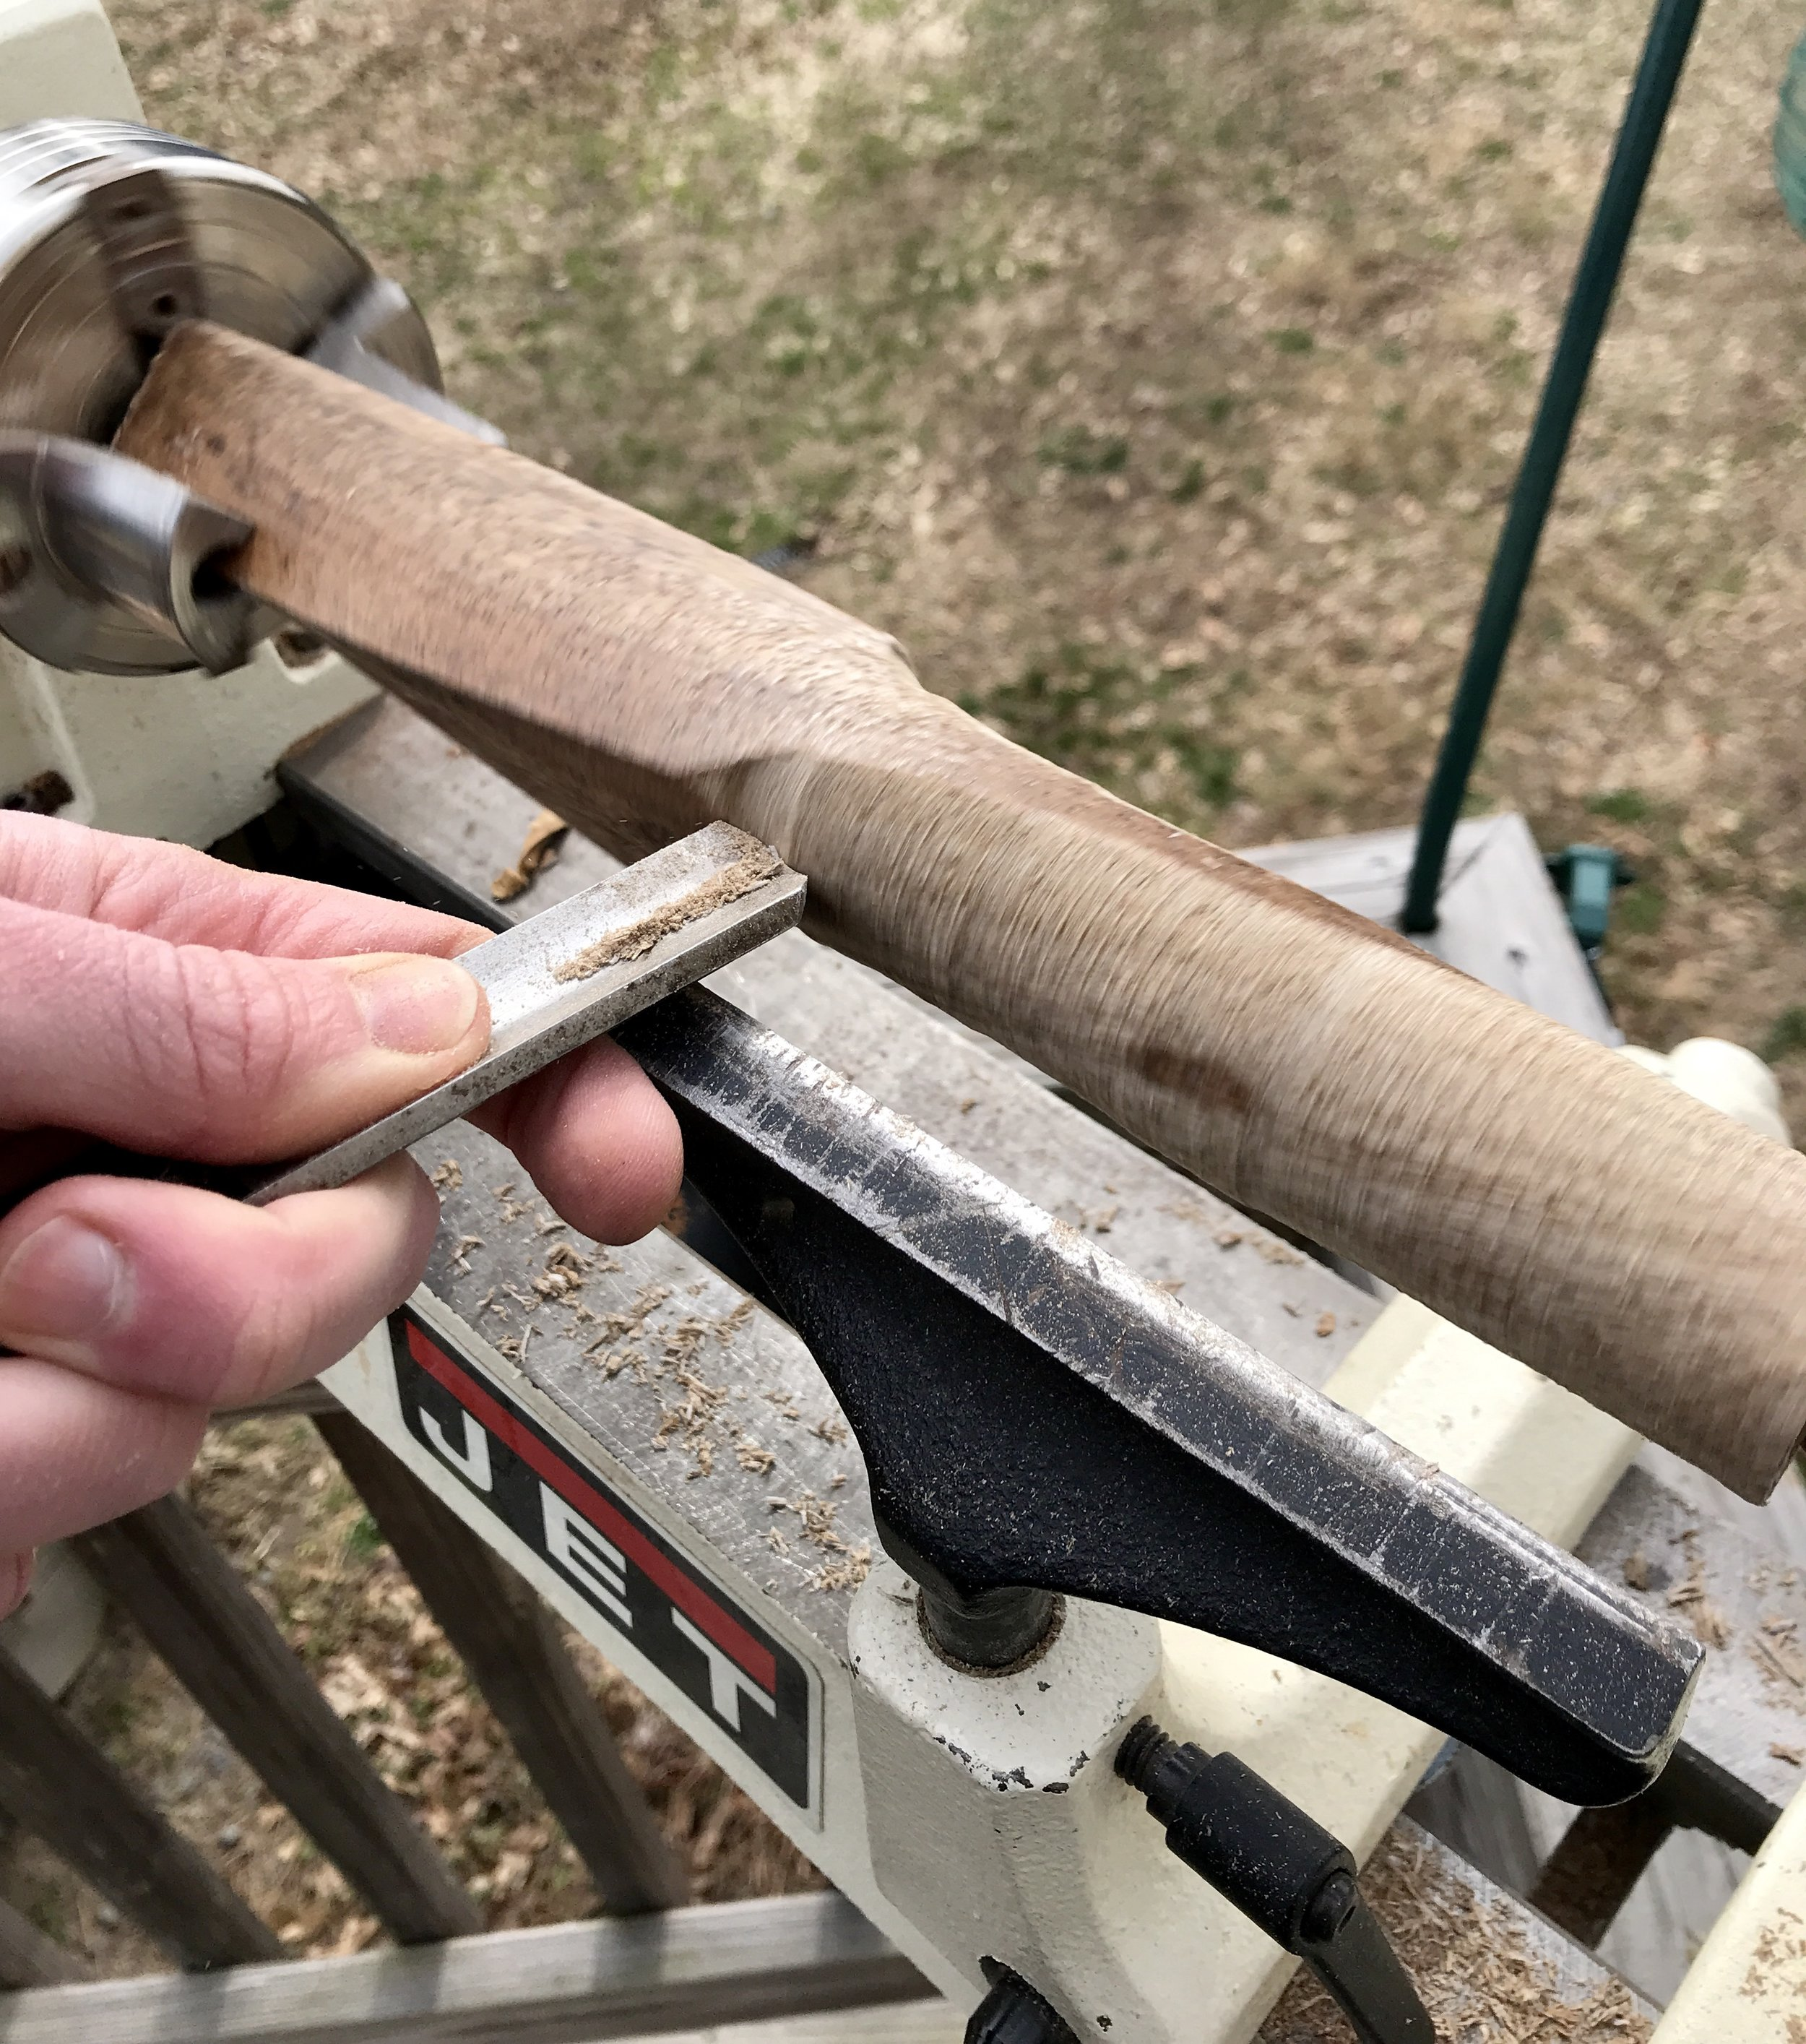 It was pointed out to me that my tool rest is much farther away from the work piece than it should be.  NOTED!  Won't happen again.  Thanks for mentioning it J!